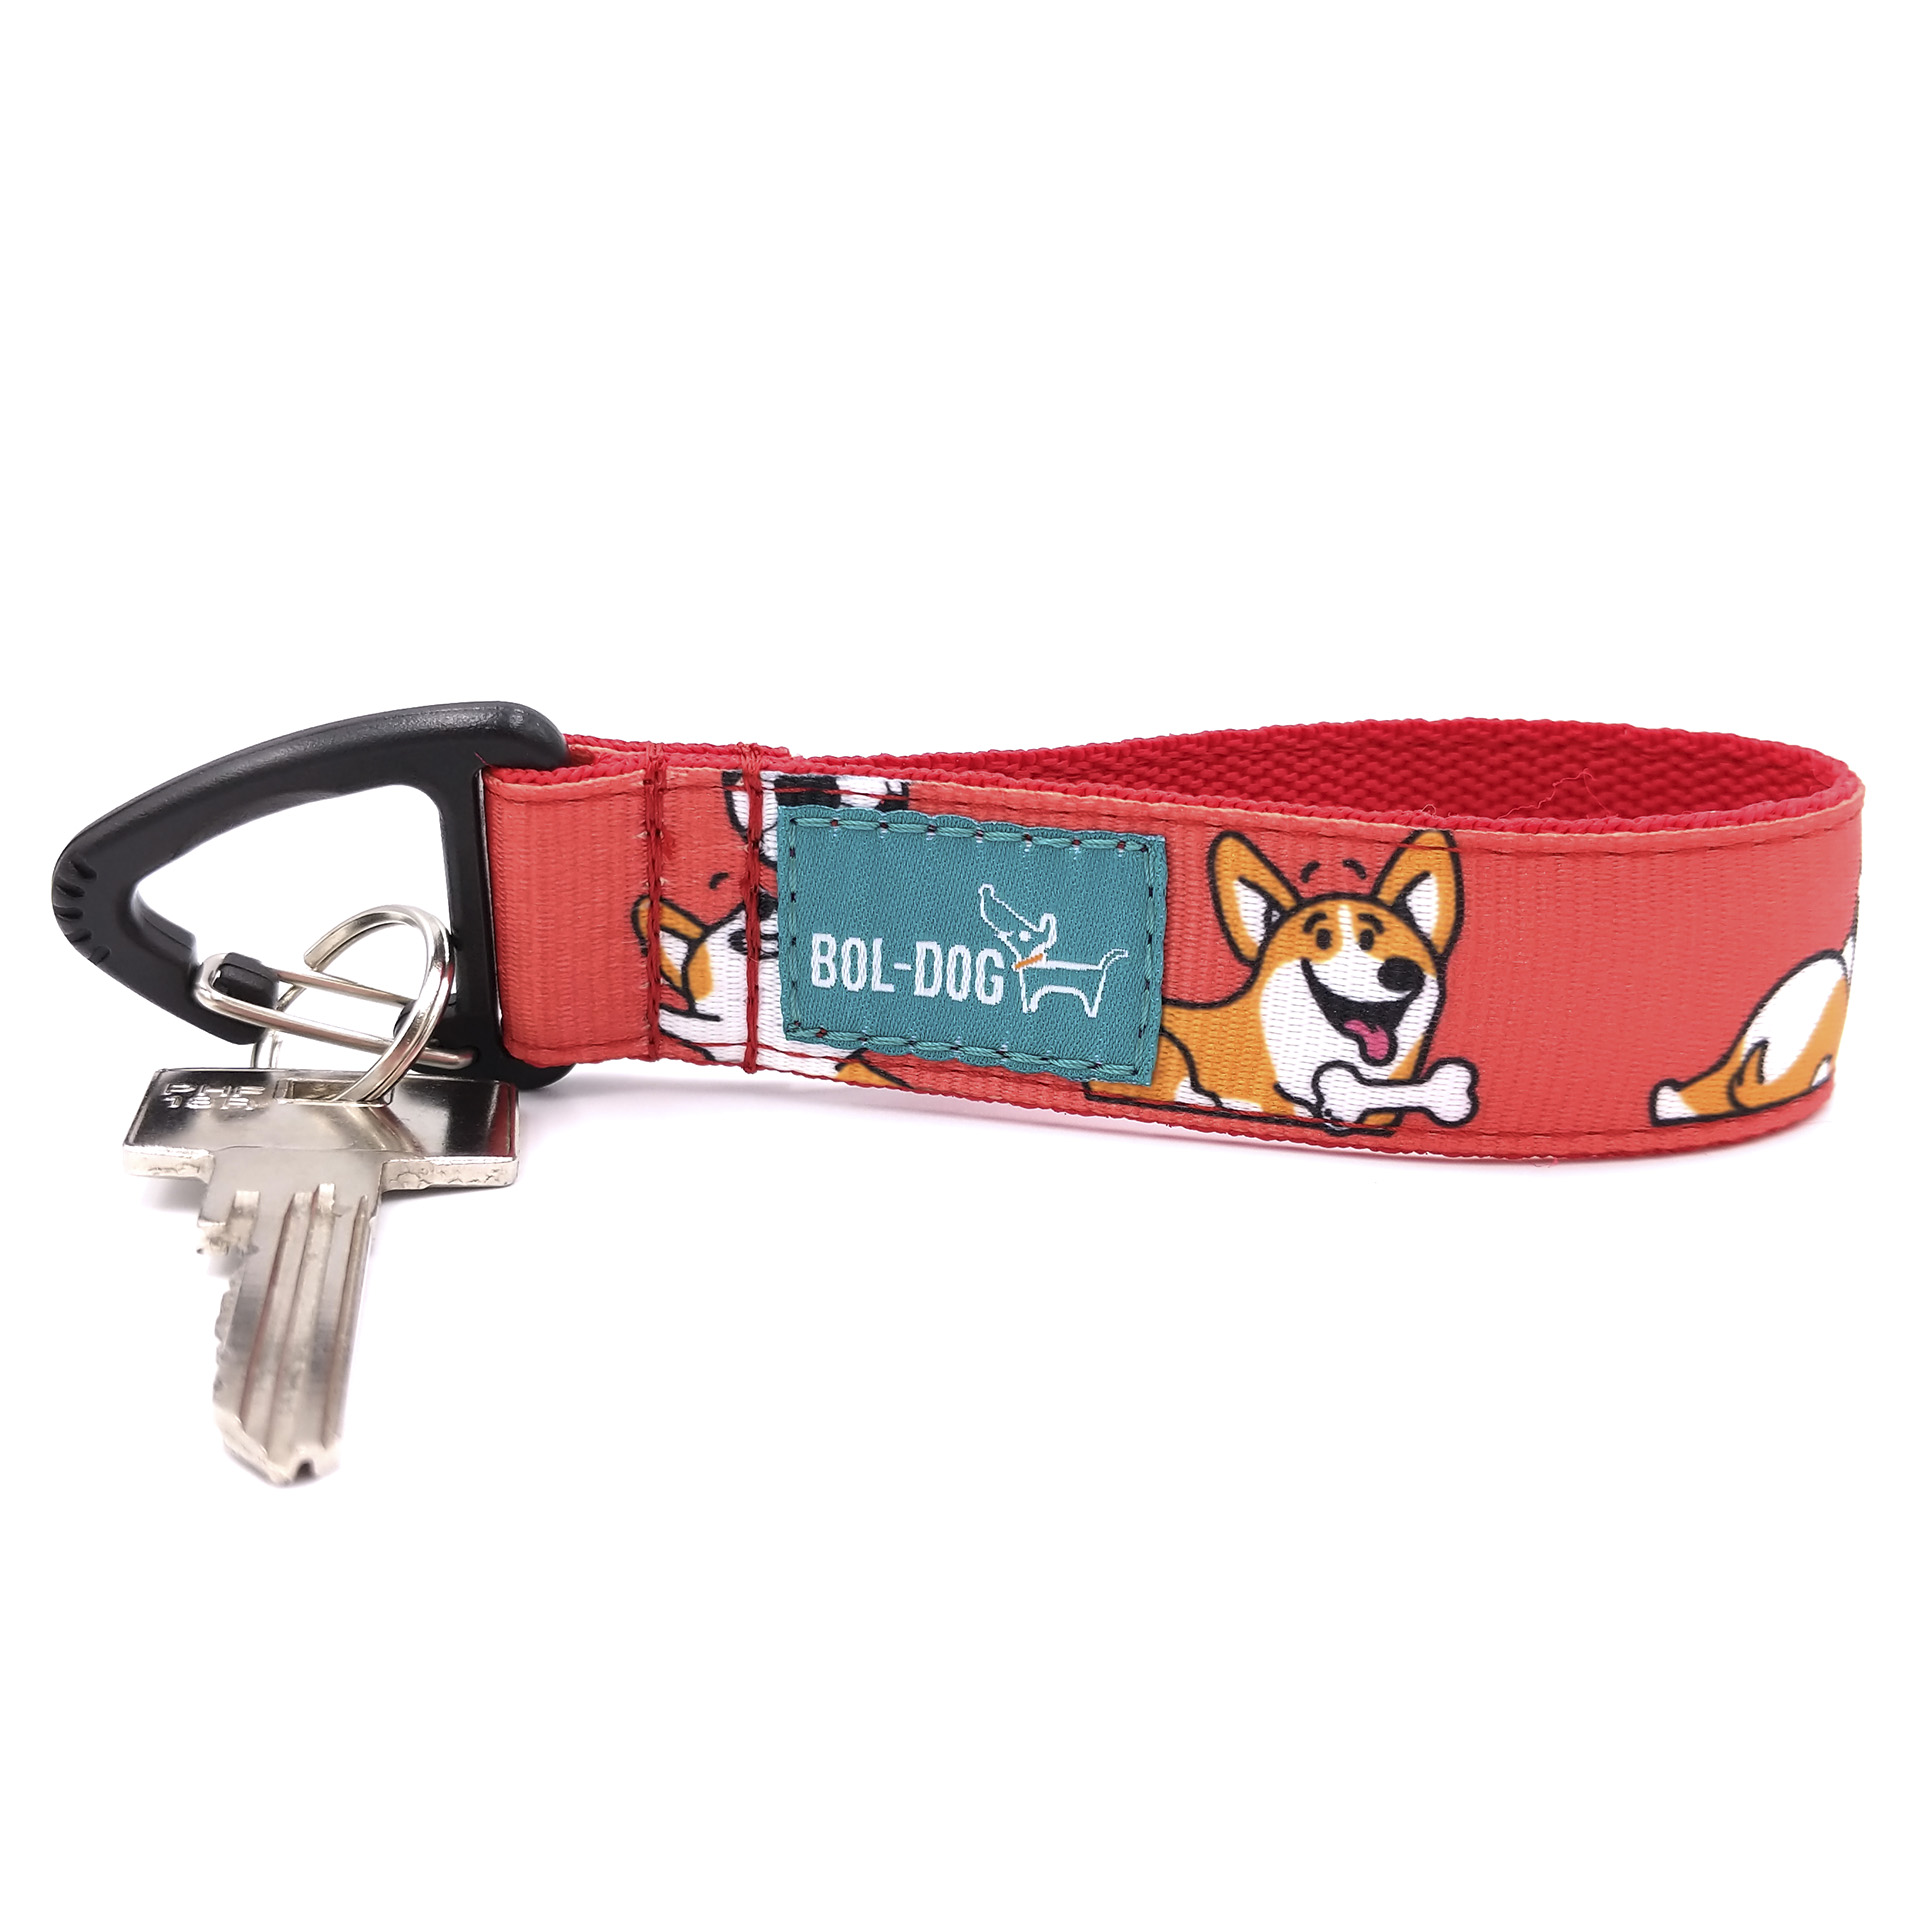 Corgi love key holder